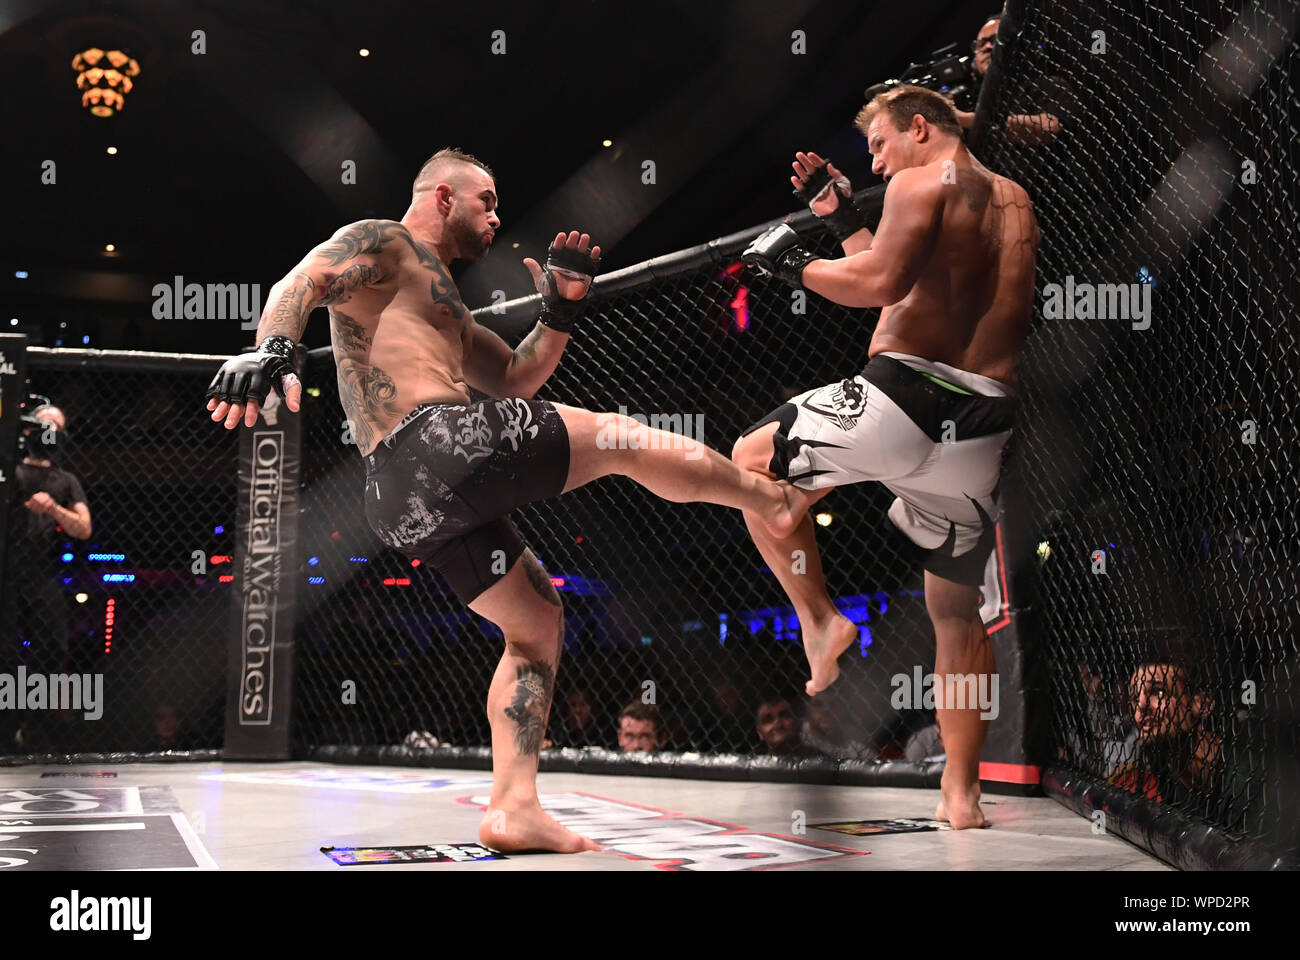 London, UK. 08th Sep, 2019. Troxy, London, England; UCMMA 60; Matthew Holland versus Alin Chirila in the  MMA 77KG Title fight, Alin Chirila lands a kick - Editorial Use Only. Credit: Action Plus Sports Images/Alamy Live News Stock Photo